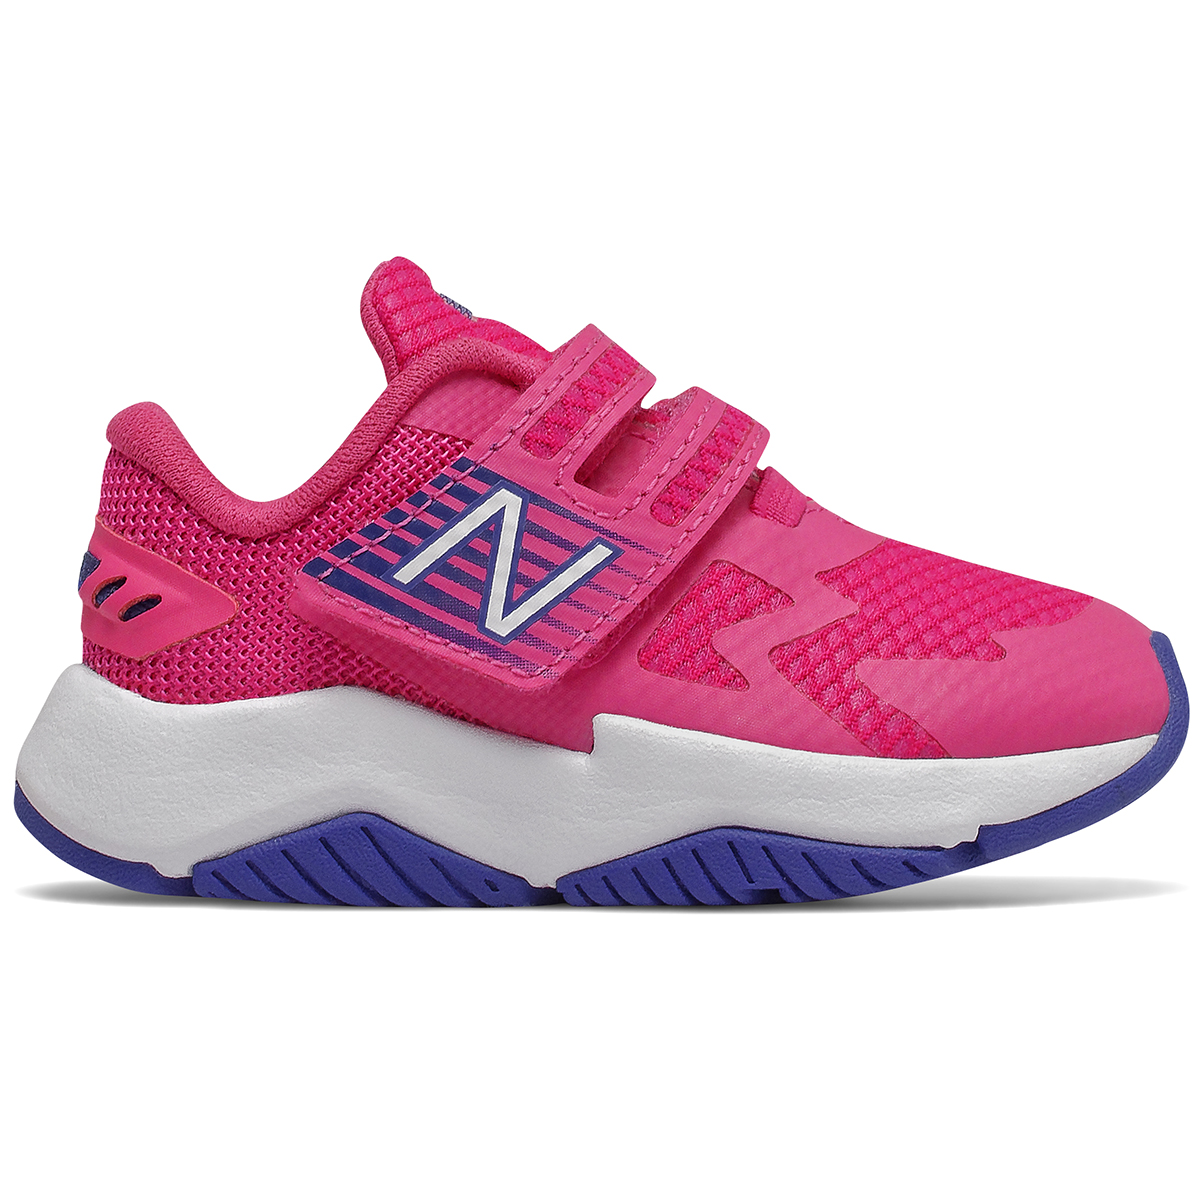 New Balance Infant/toddler Girls' Rave Running Sneakers - Red, 5